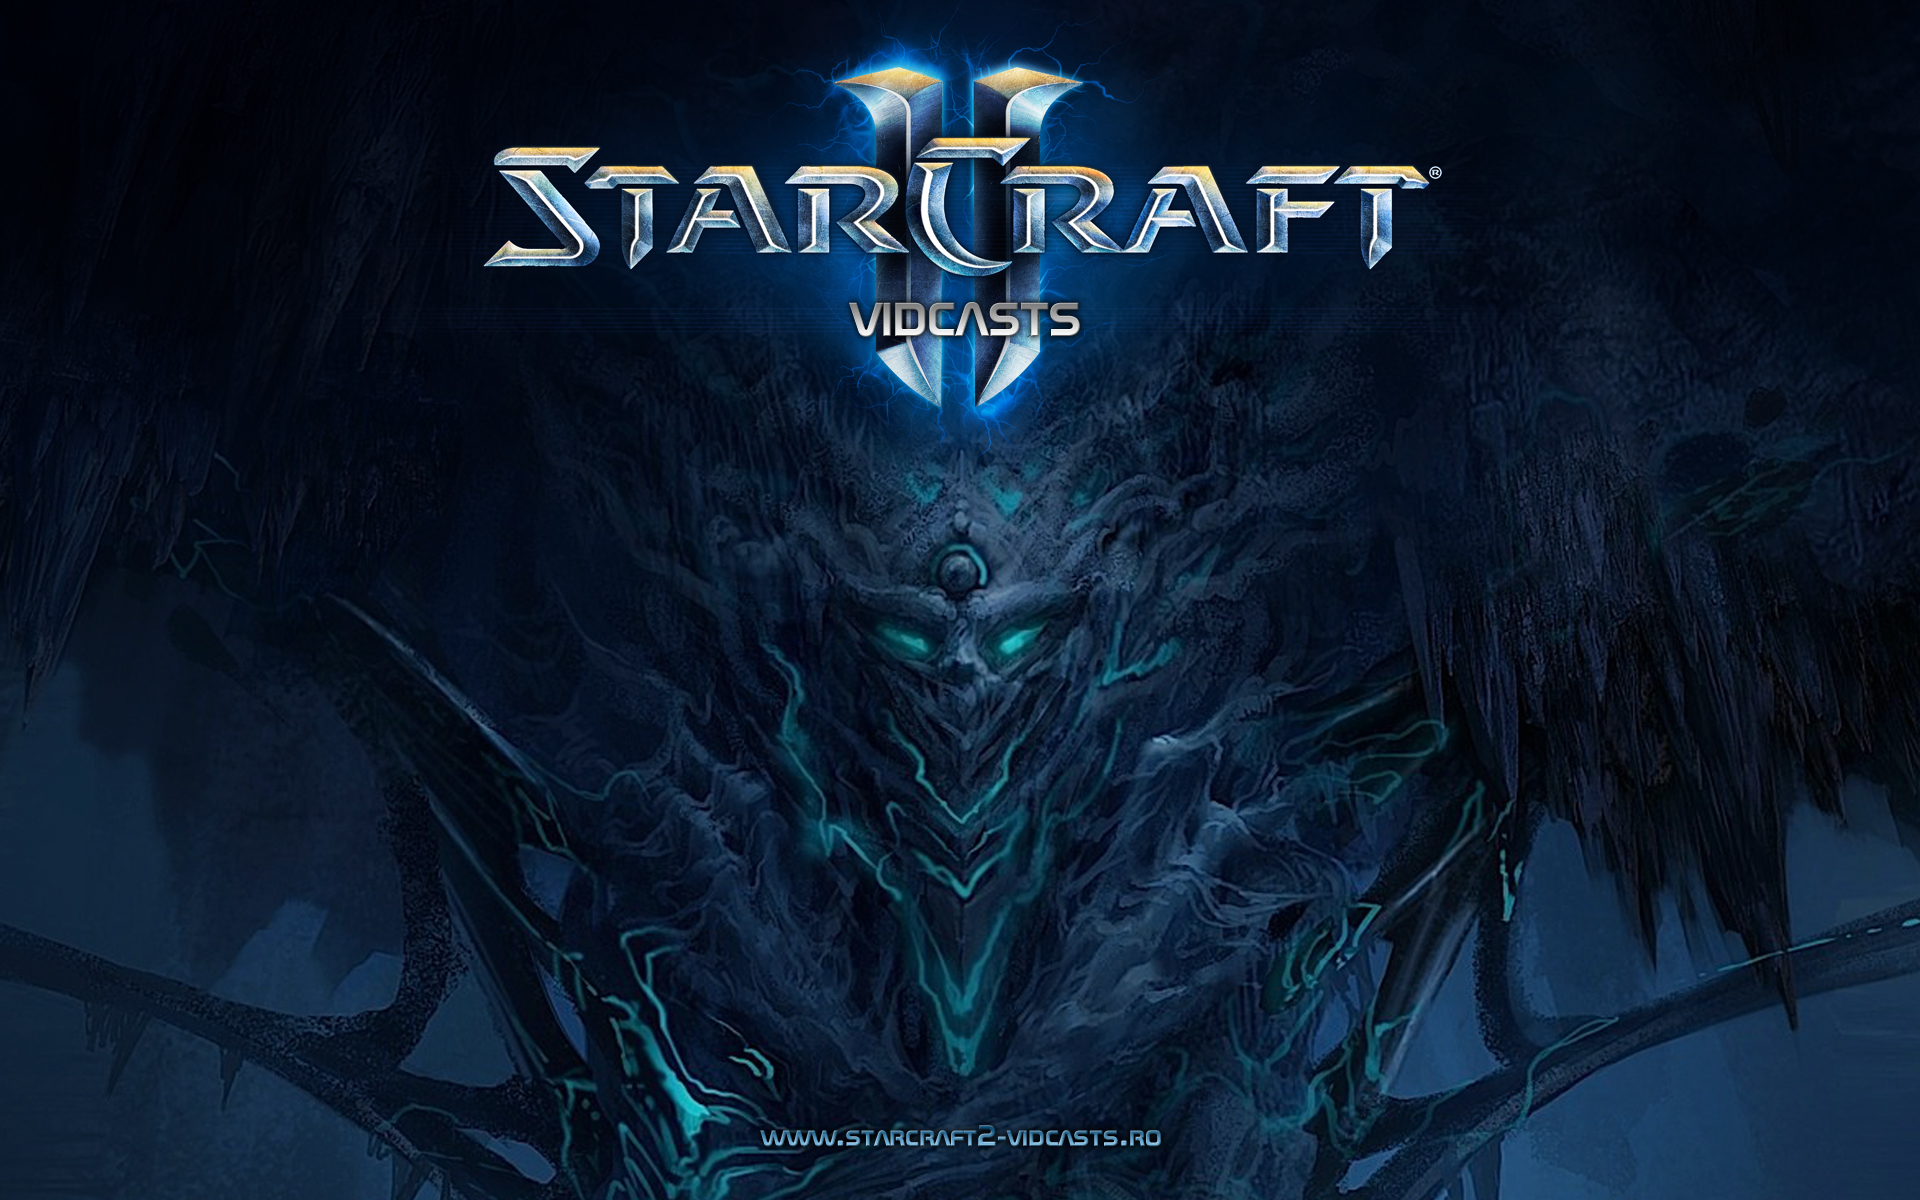 Starcraft 2 Wallpaper - HD Desktop Wallpapers